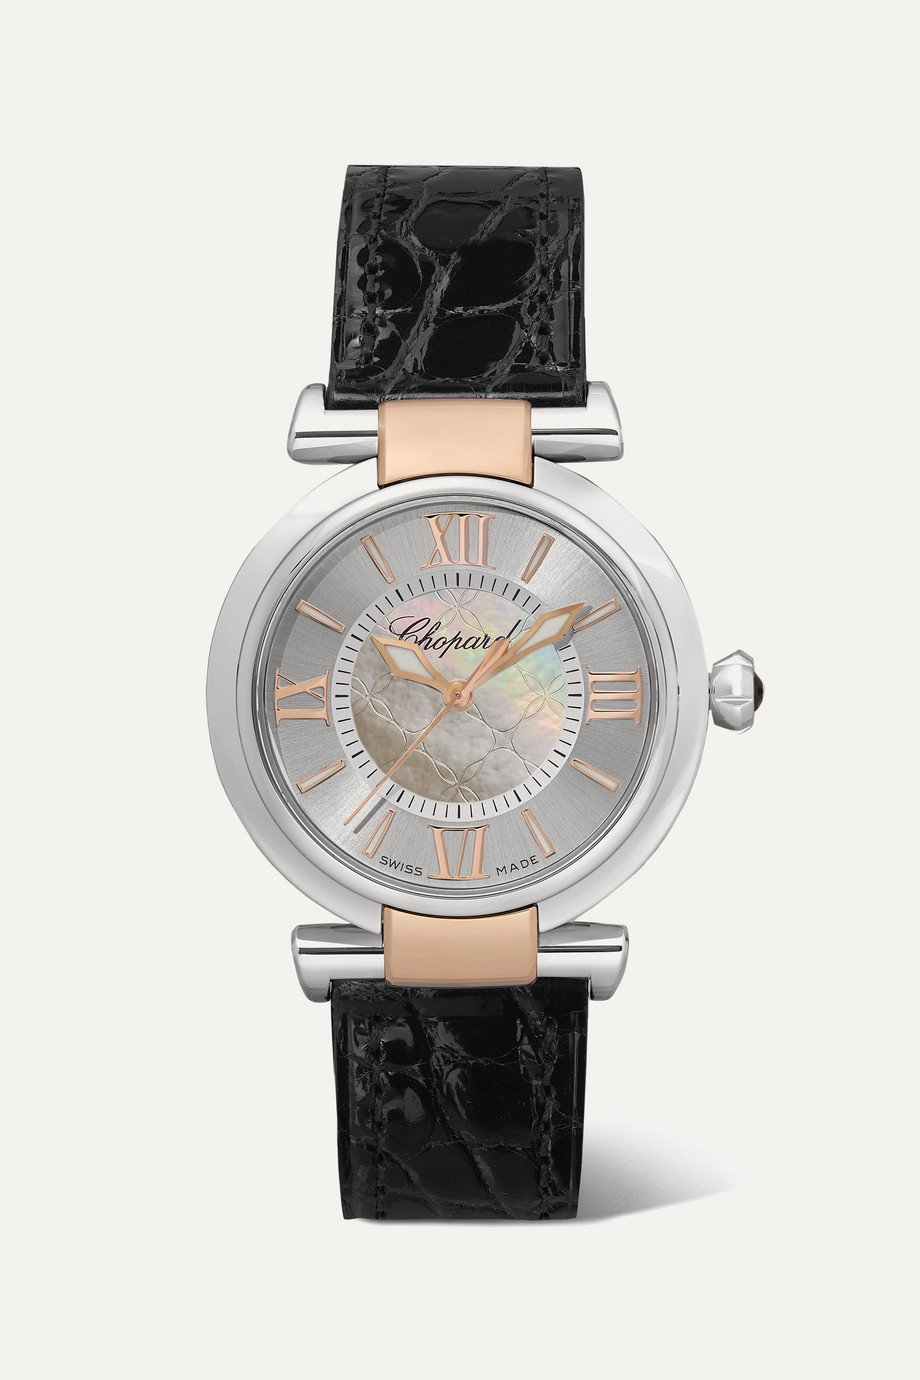 CHOPARD Imperiale Automatic 29mm stainless steel, 18-karat rose gold, alligator and mother-of-pearl watch